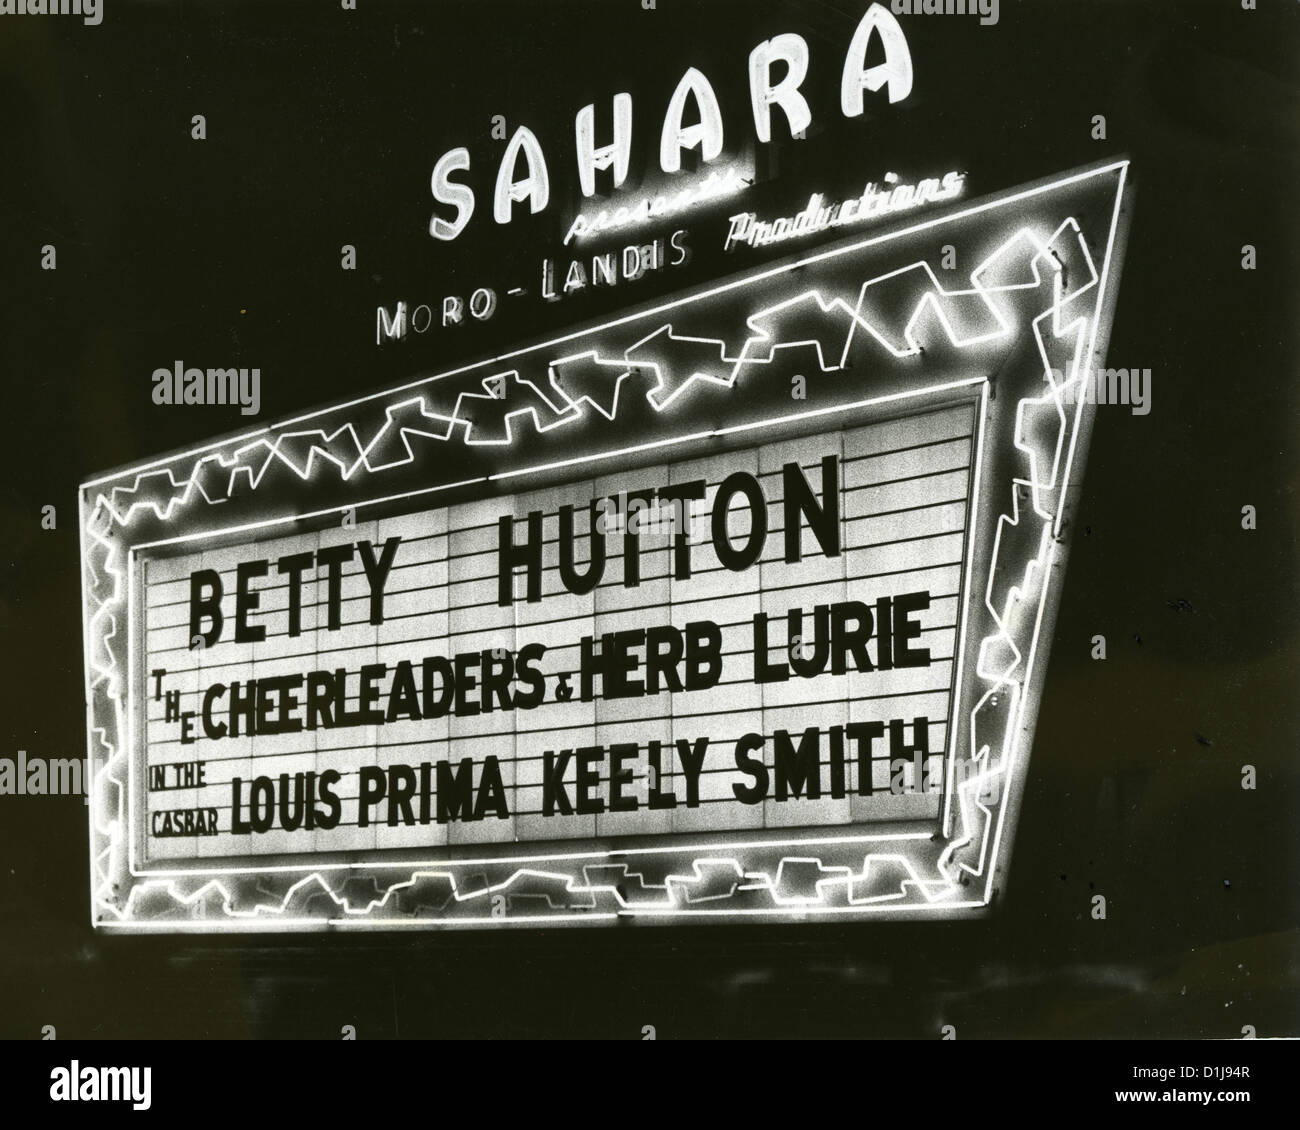 BETTY HUTTON (1921-2007) US stage, film and TV actress and singer appearing at the Sahara, Las Vegas in 1956 - Stock Image